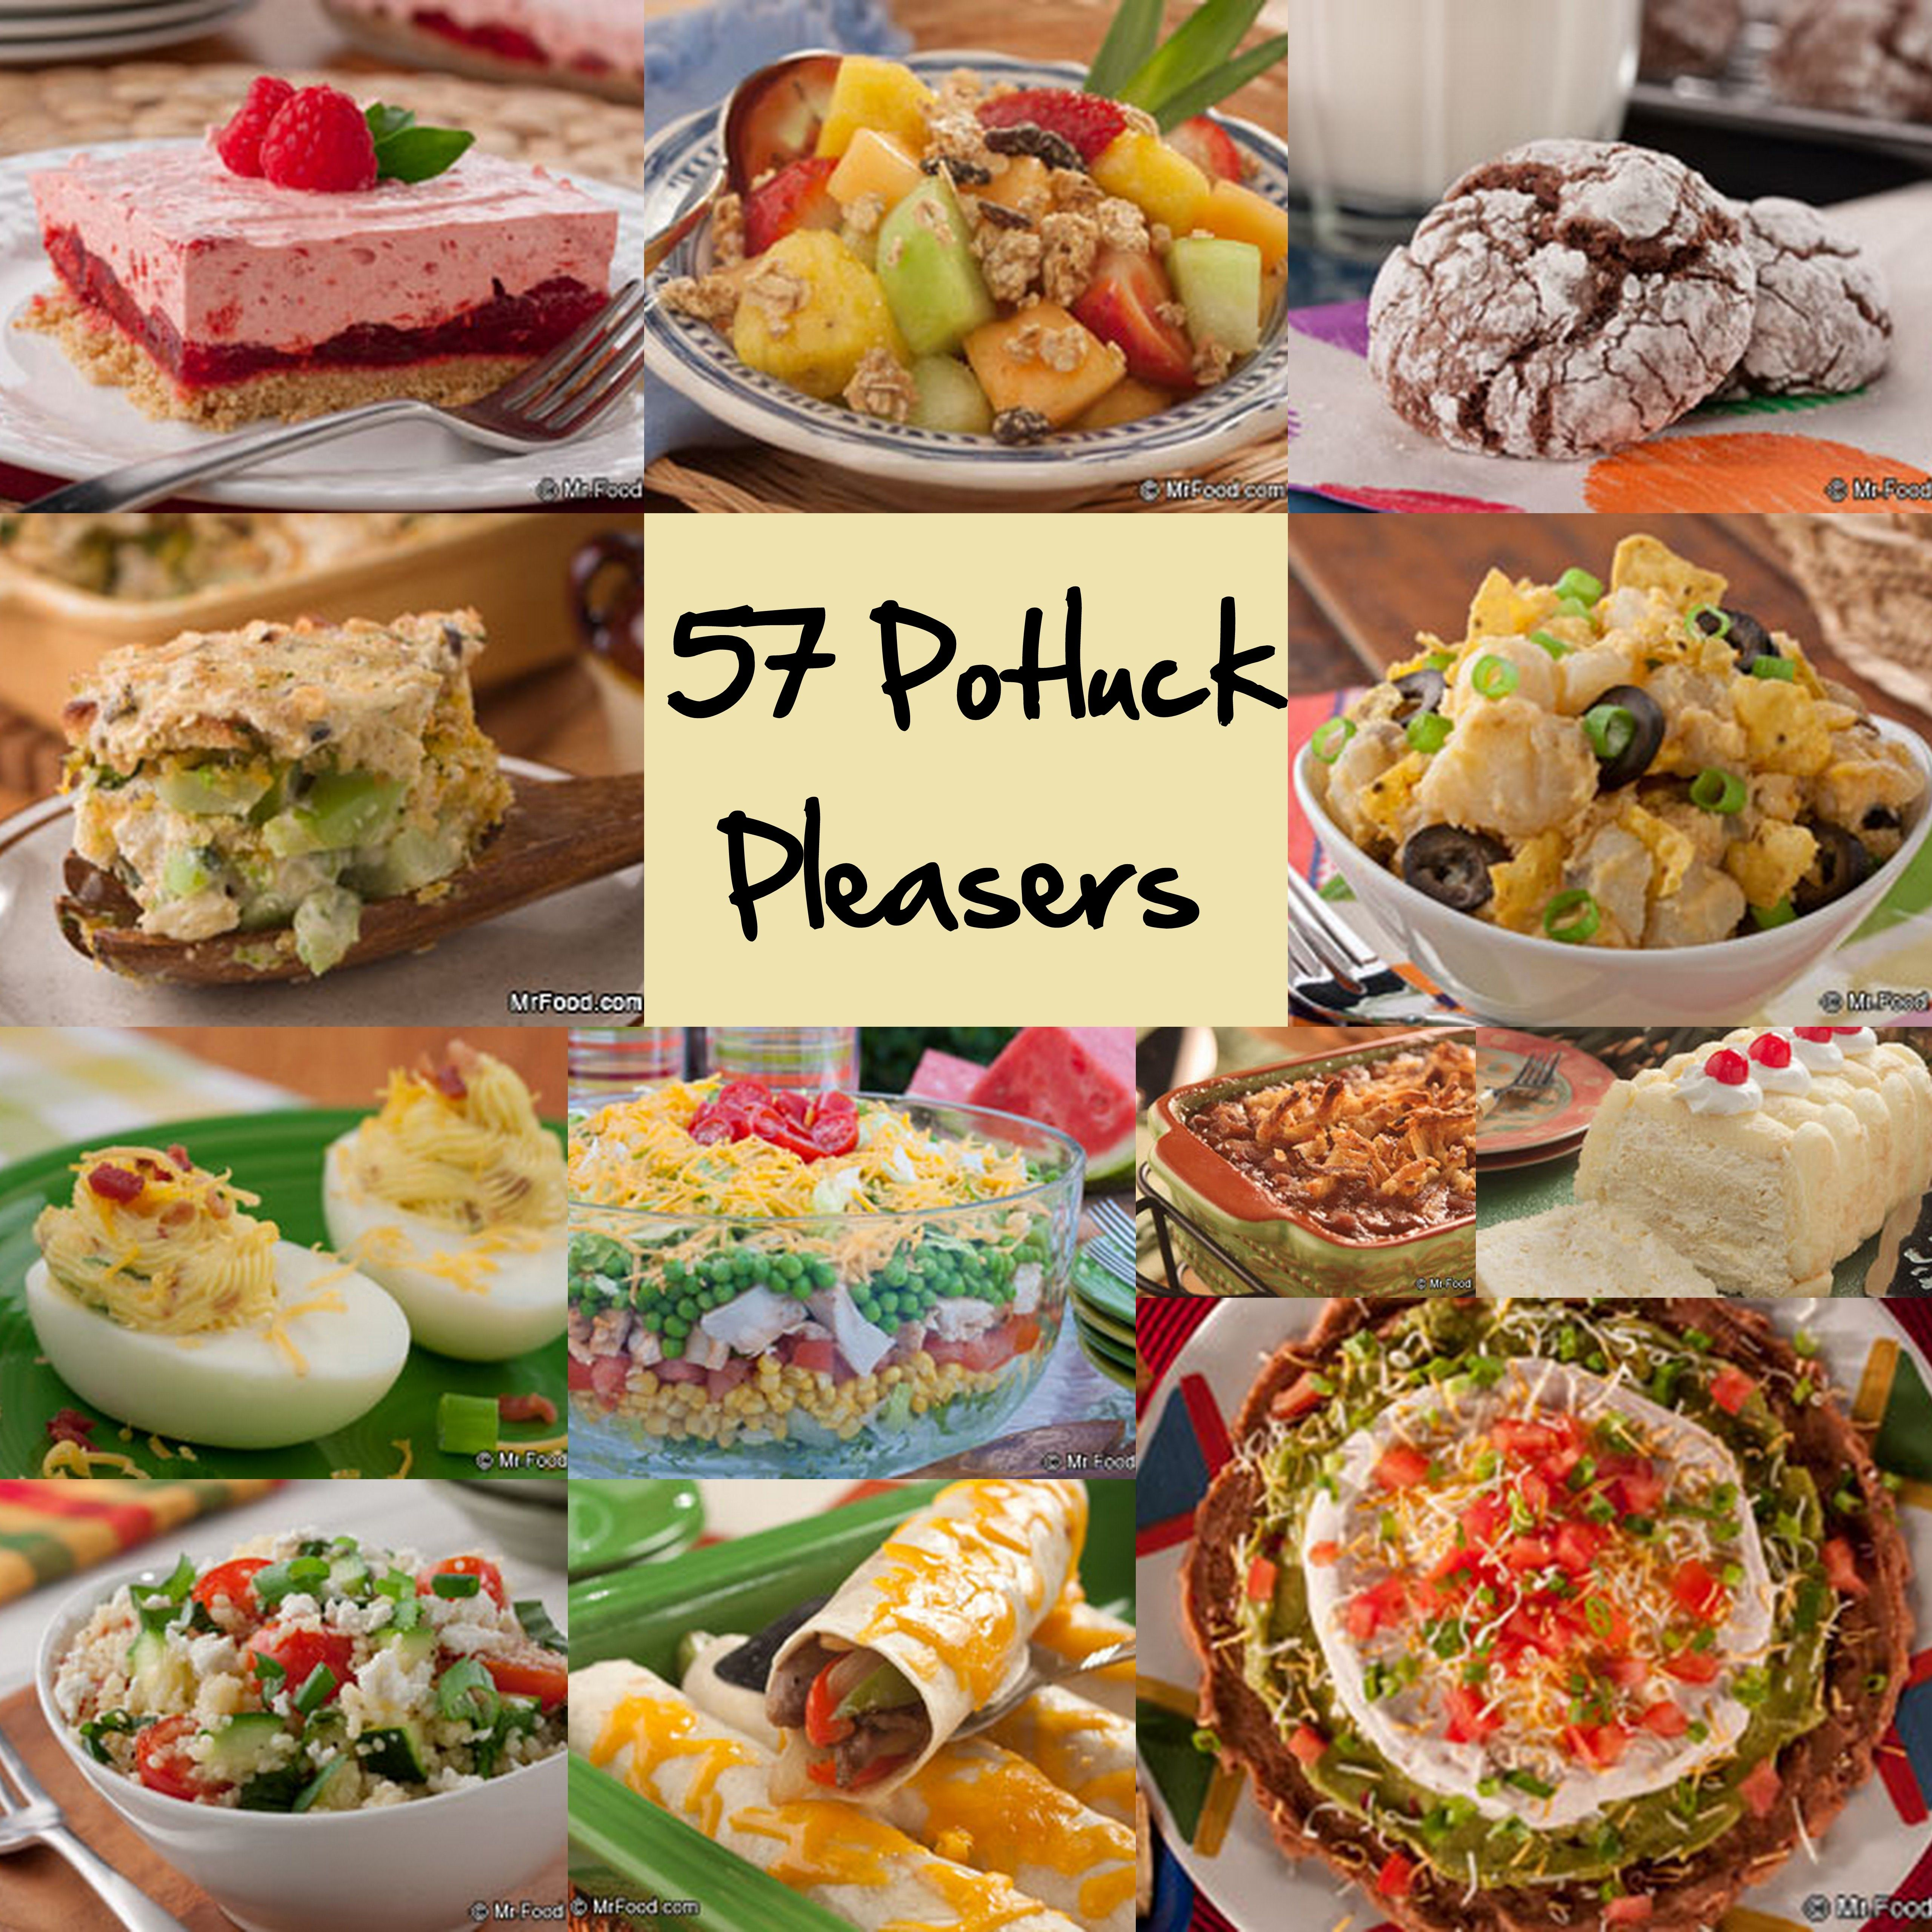 Easy recipes for potluck parties